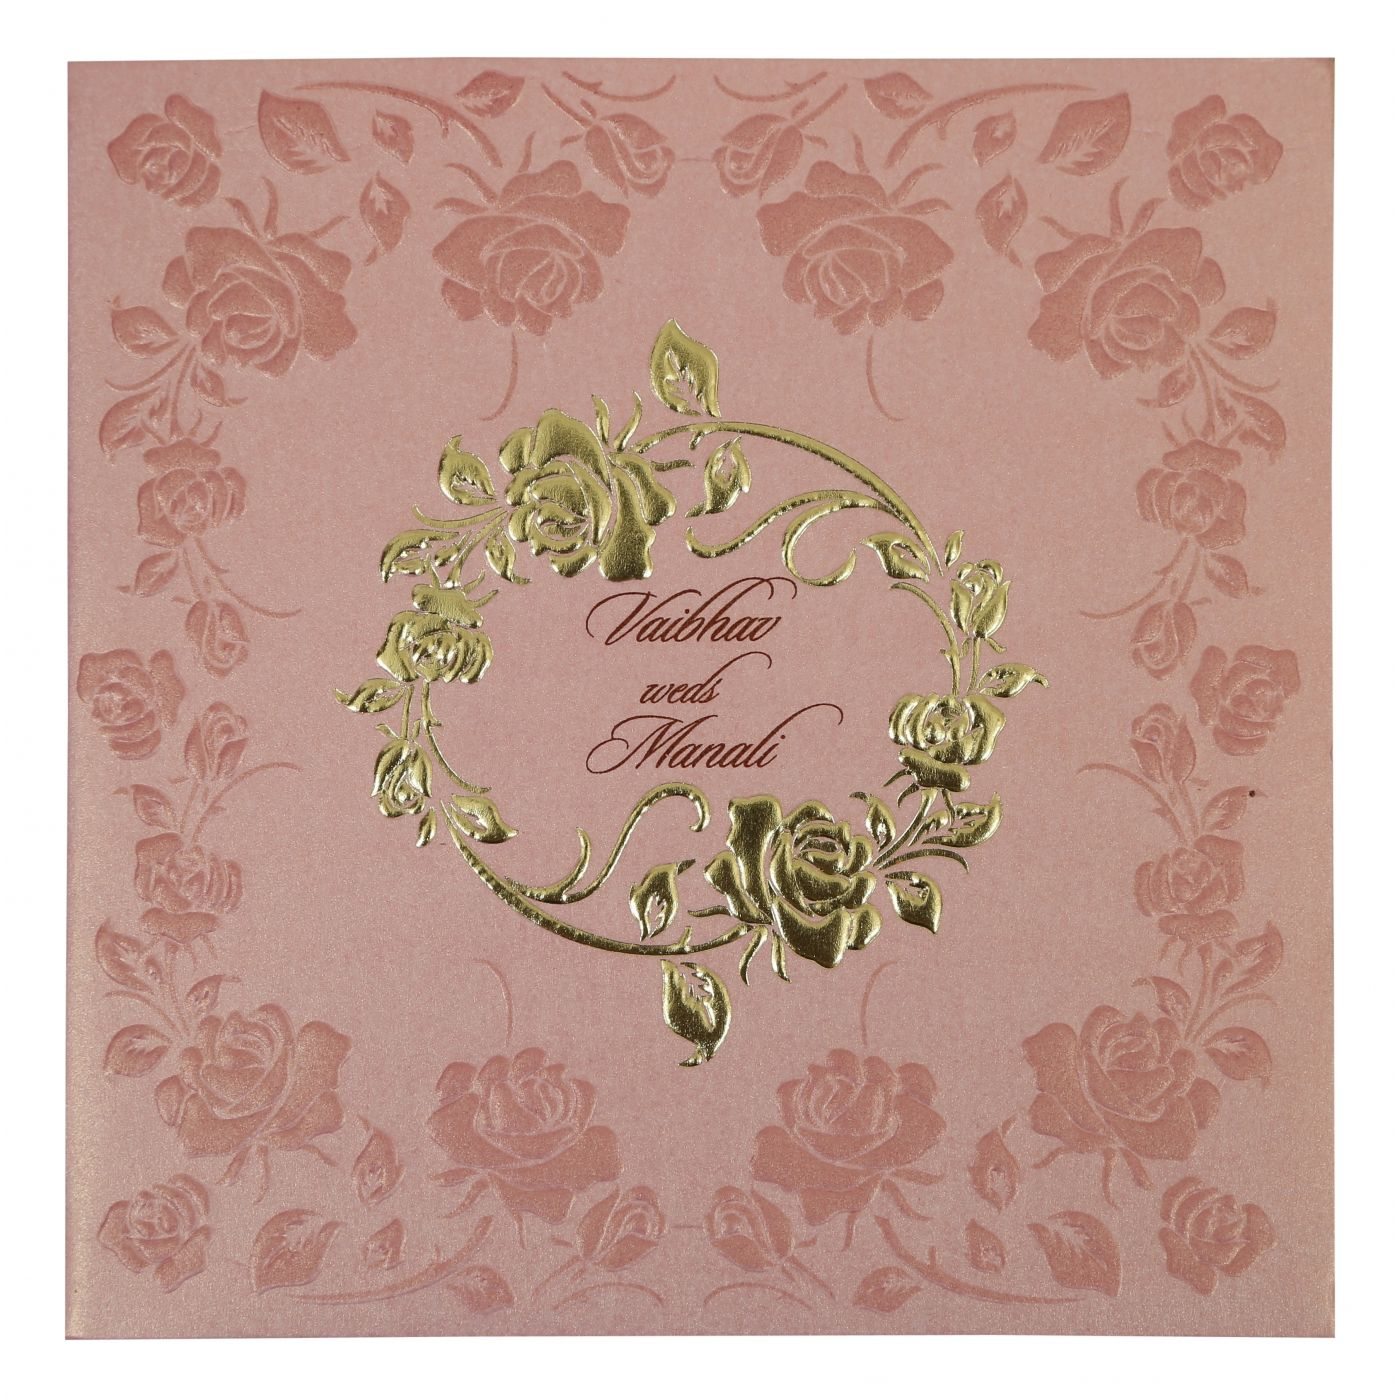 BABY PINK SHIMMERY FLORAL THEMED - FOIL STAMPED WEDDING INVITATION : CD-1787 - IndianWeddingCards